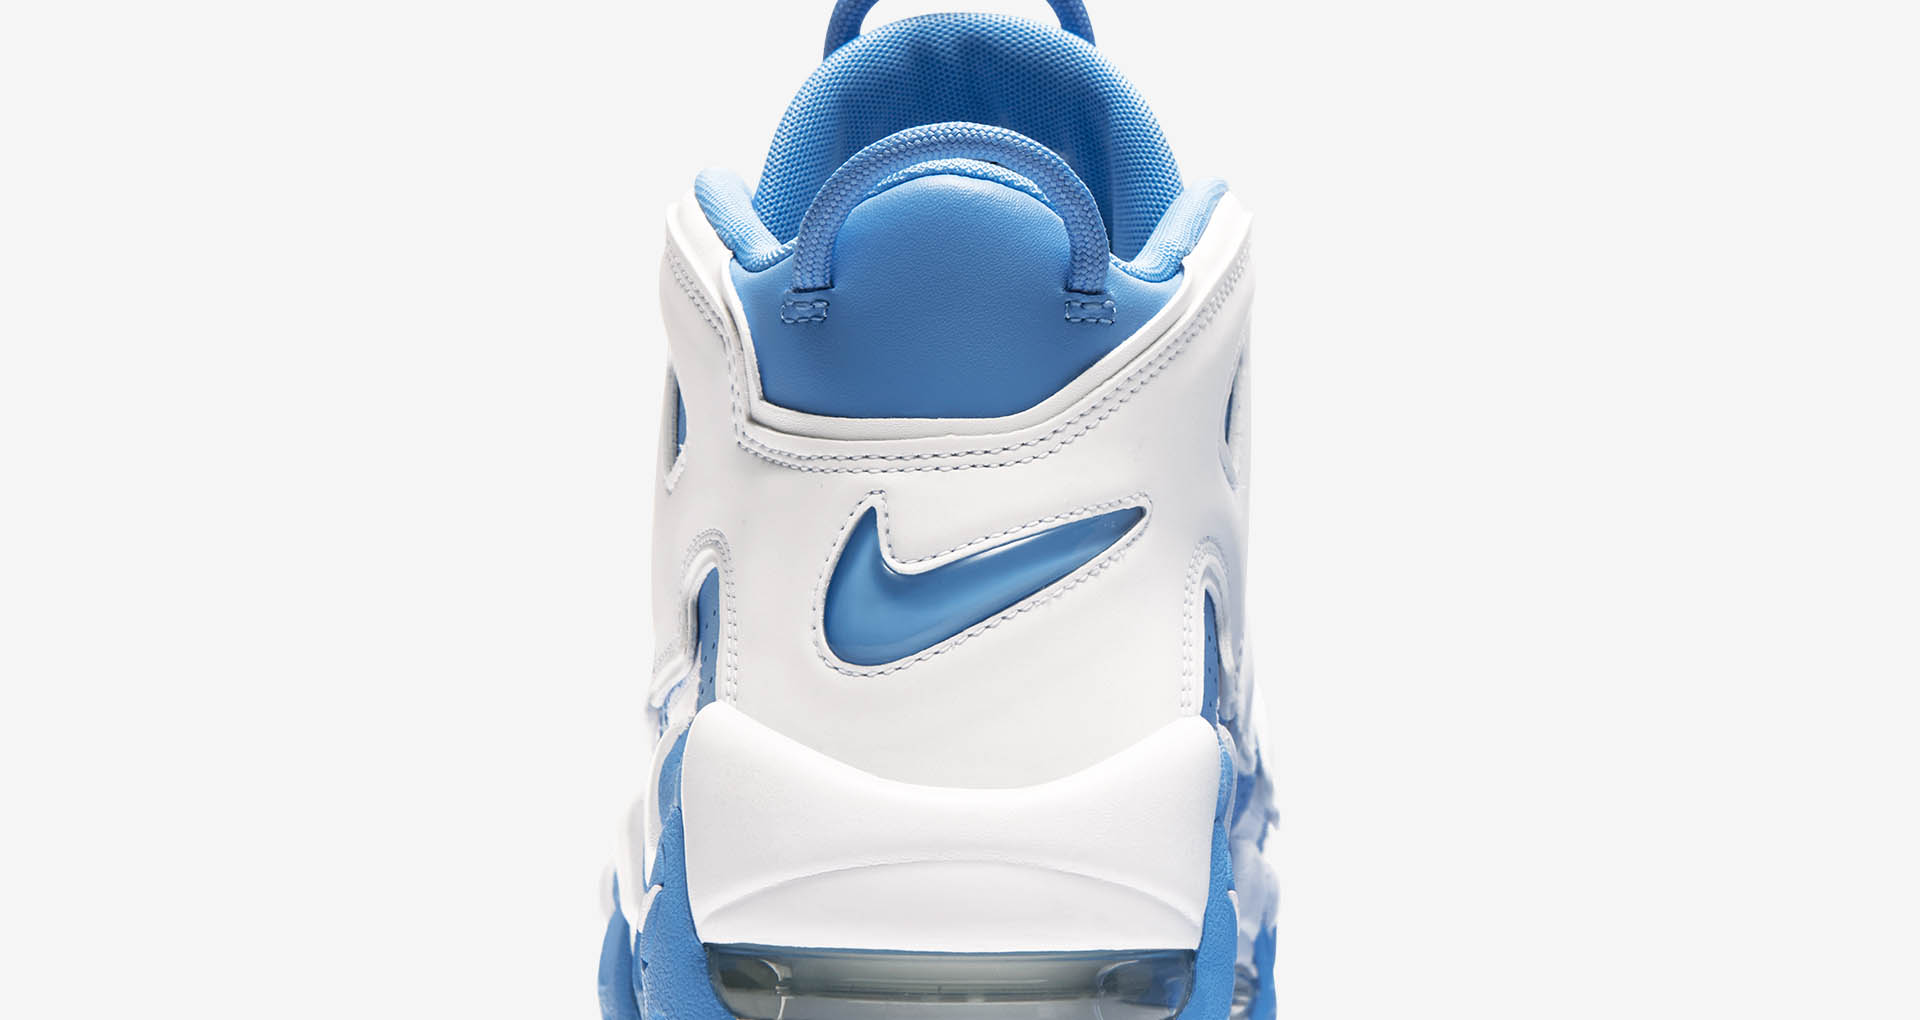 nike-air-more-uptempo-96-univ-blue-921948-401-release-20170901